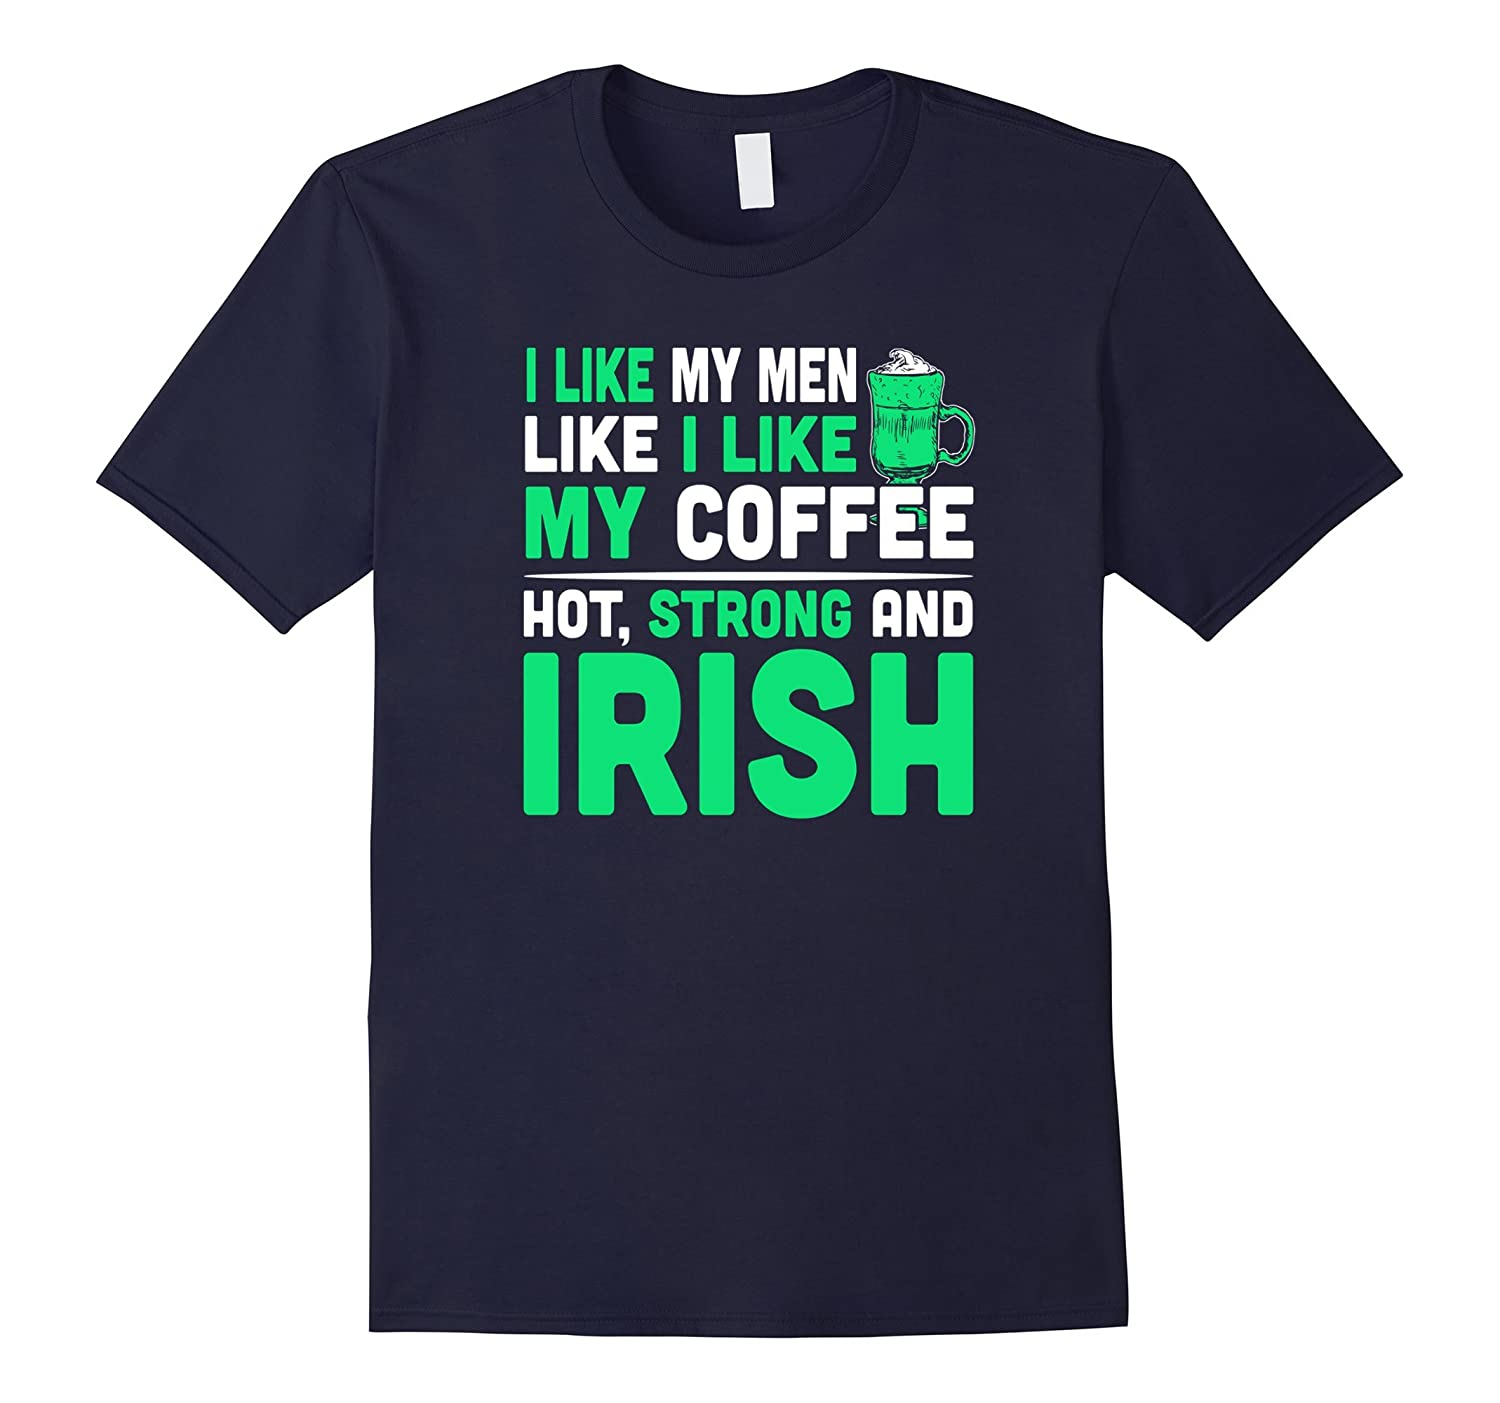 Funny I Like My Men Like My Coffee Hot Strong Irish T-Shirt-CL